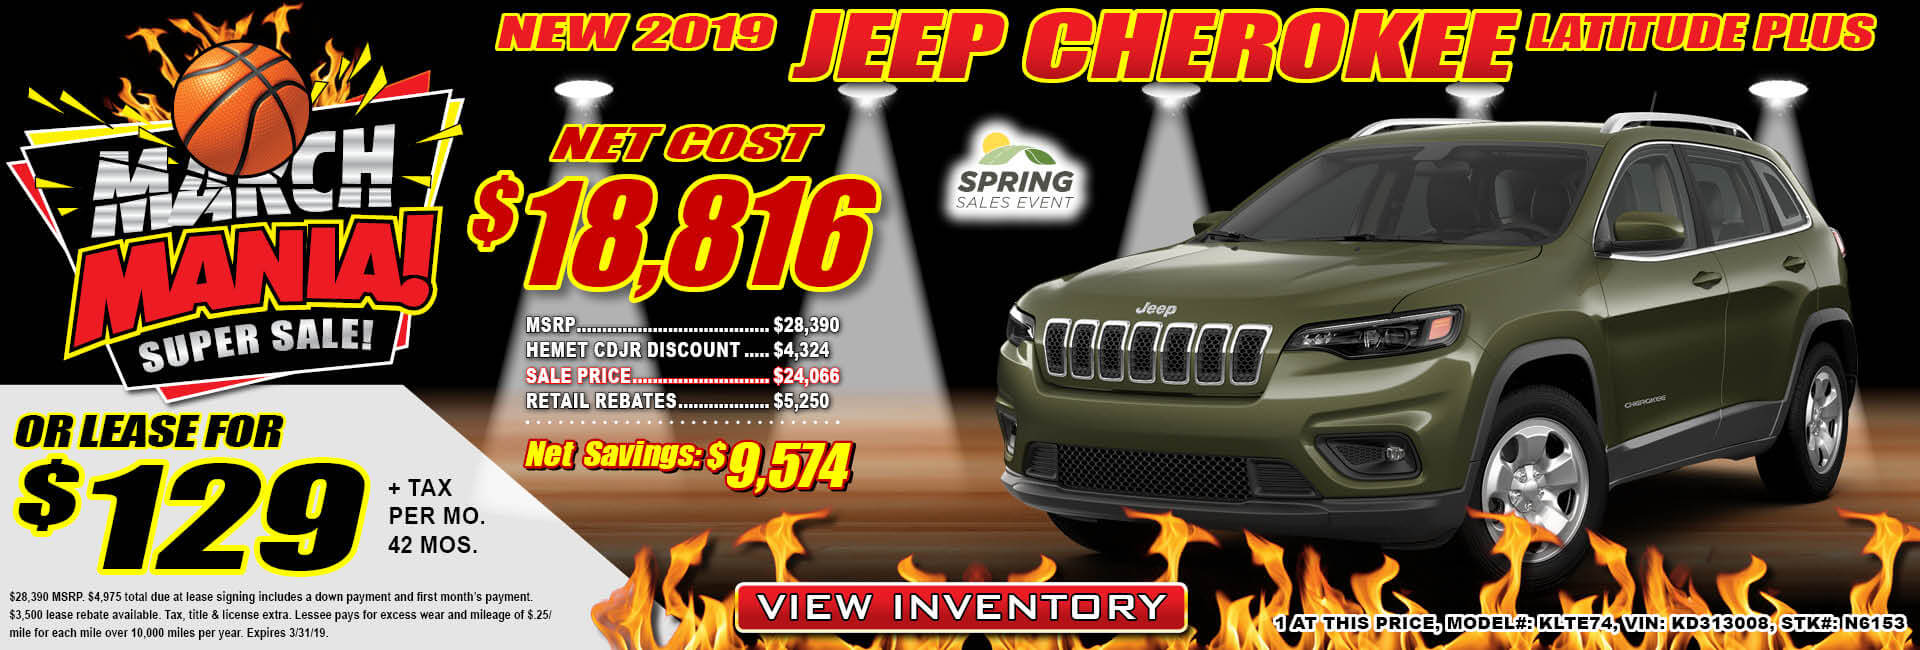 Jeep Cherokee Lease $129